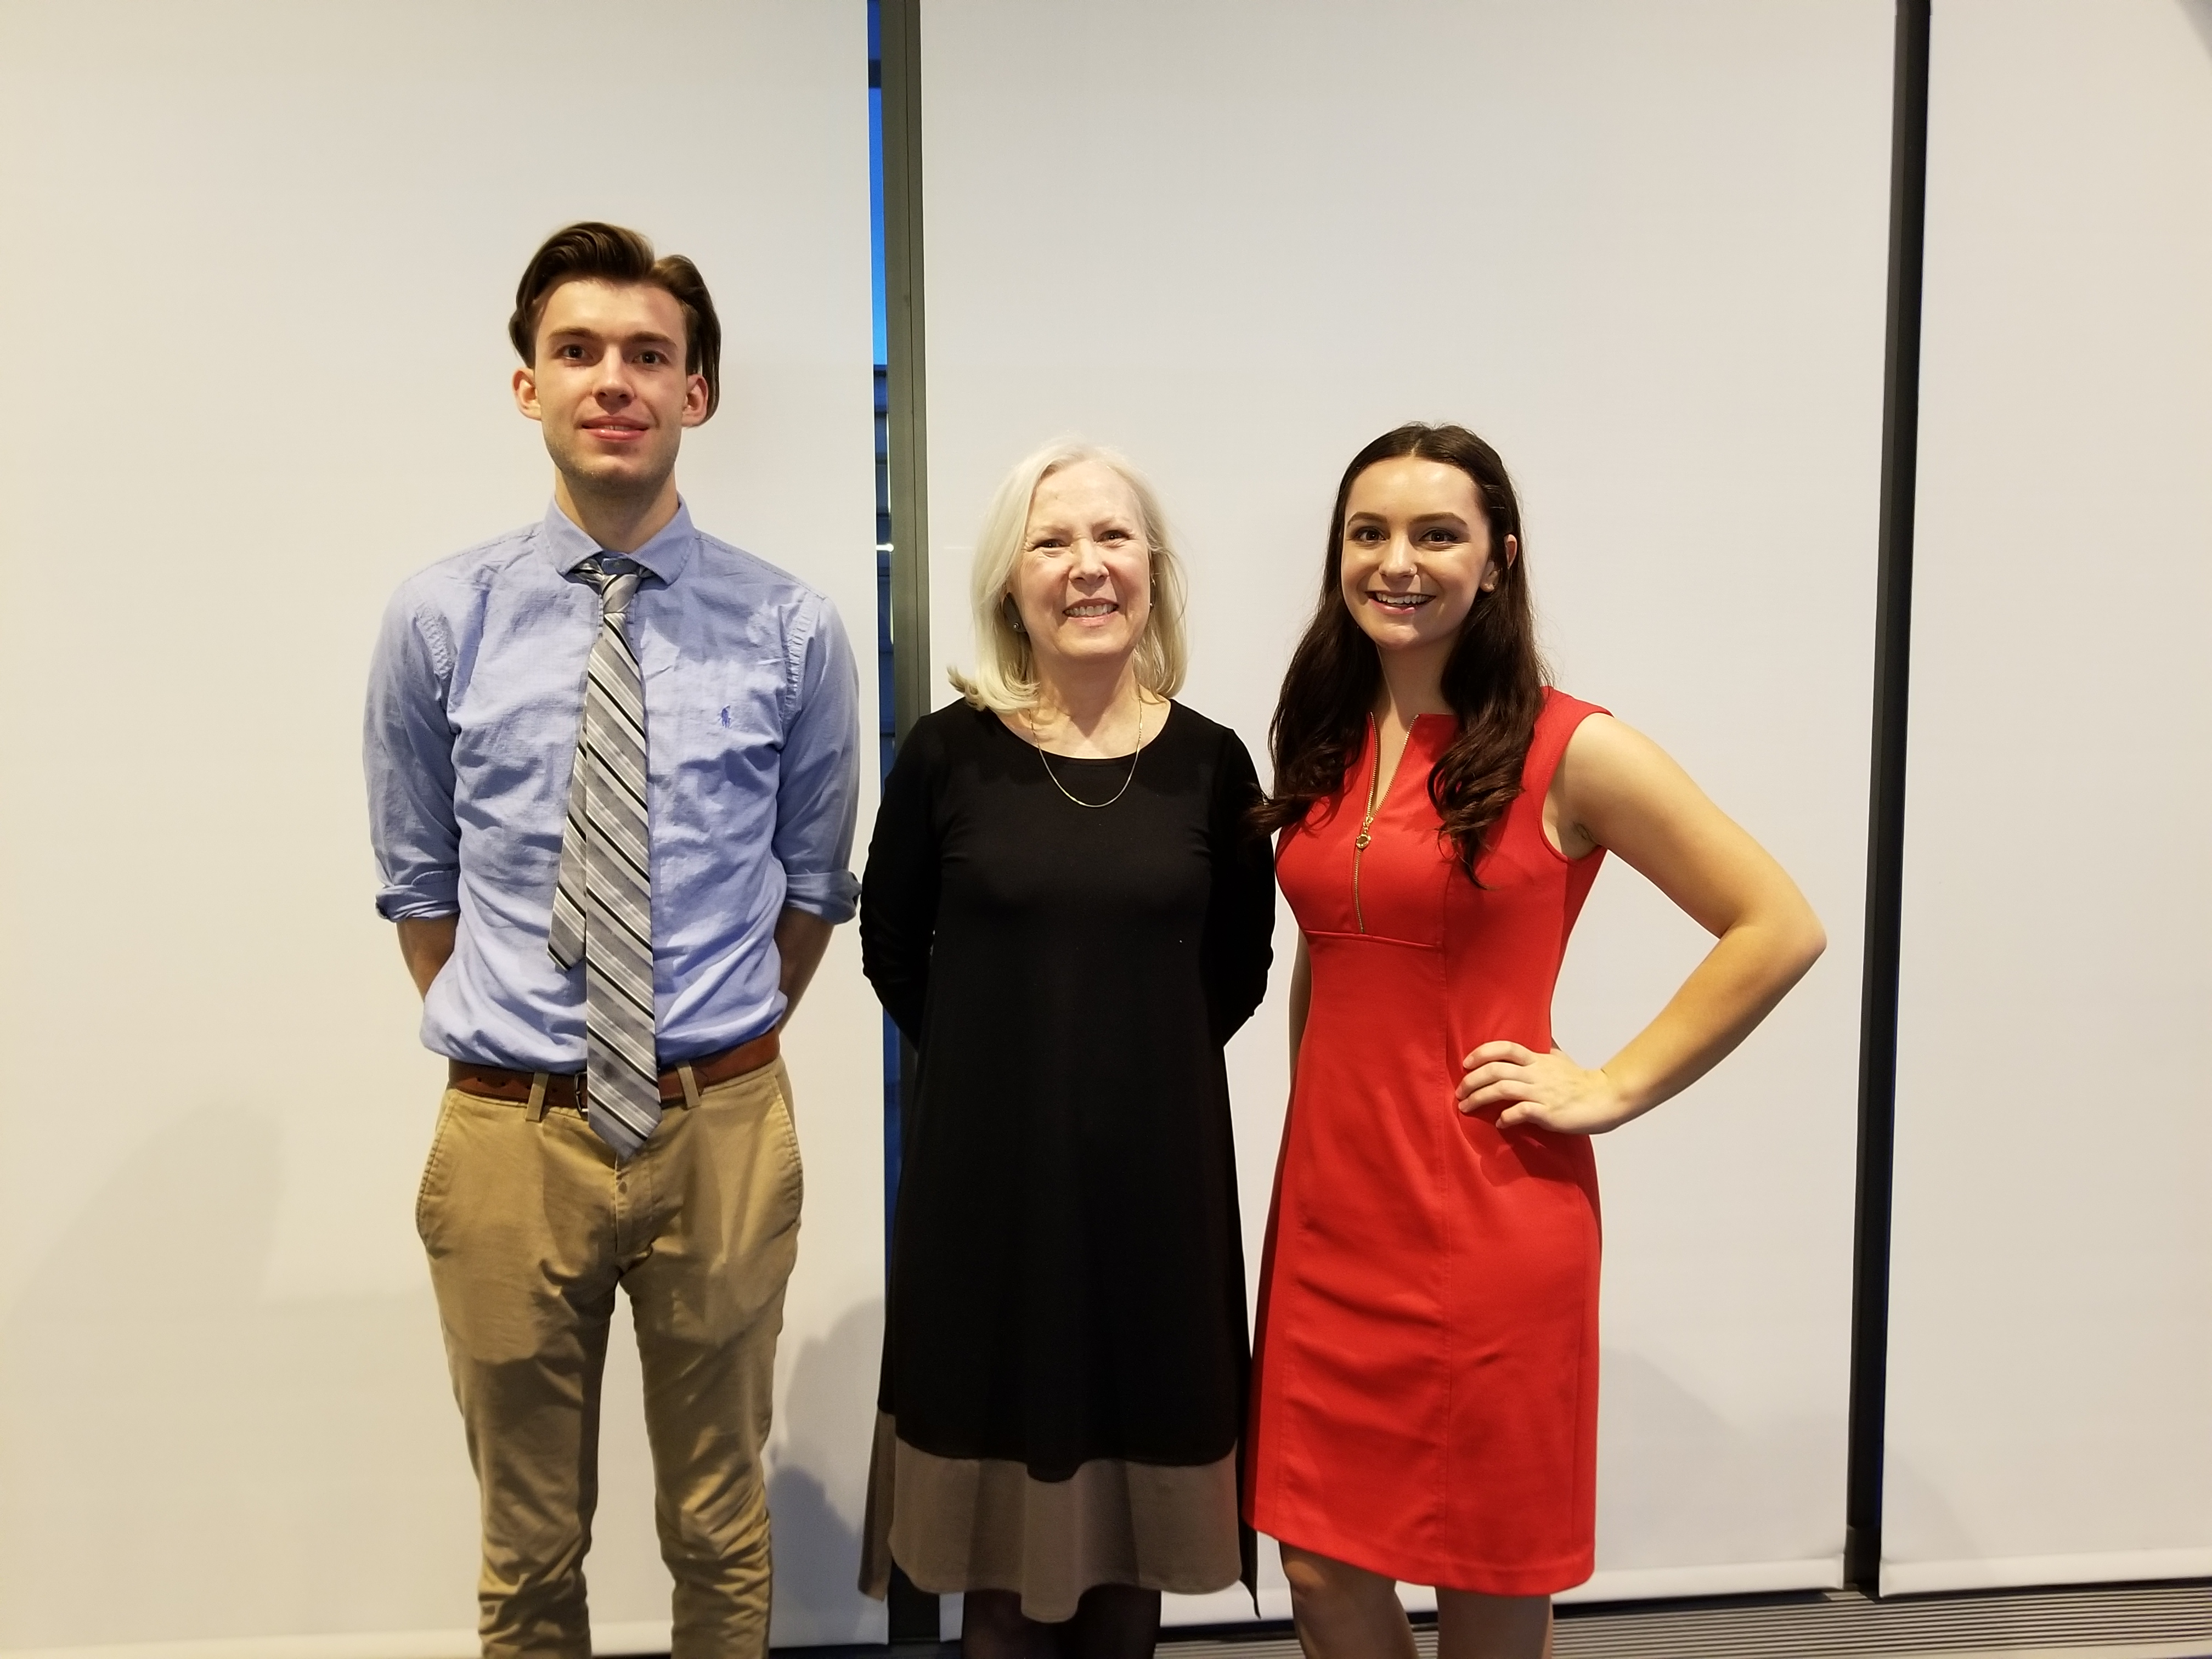 Professor Karen Beckwith and her advisees, David McGrath and Kirsten Costedio.